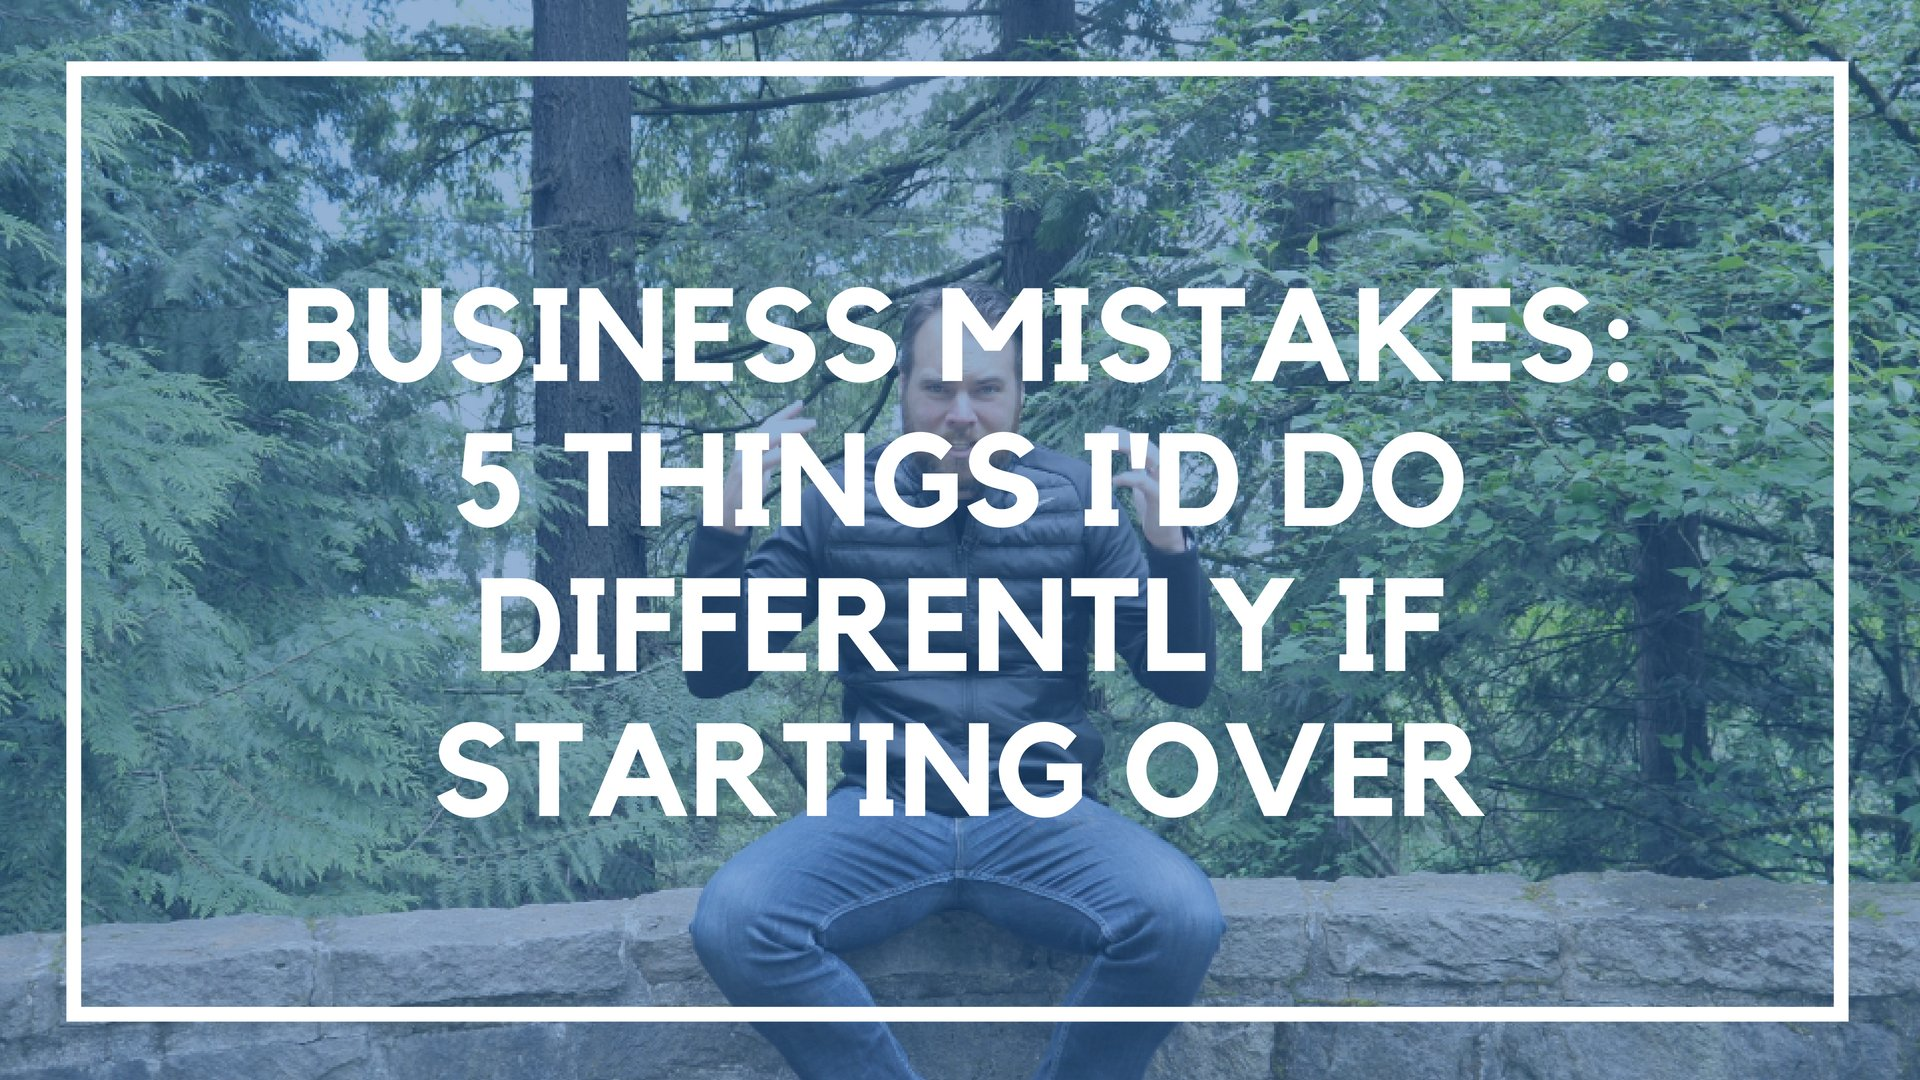 Business Mistakes: 5 Things I'd Do Differently if Starting Over in 2021